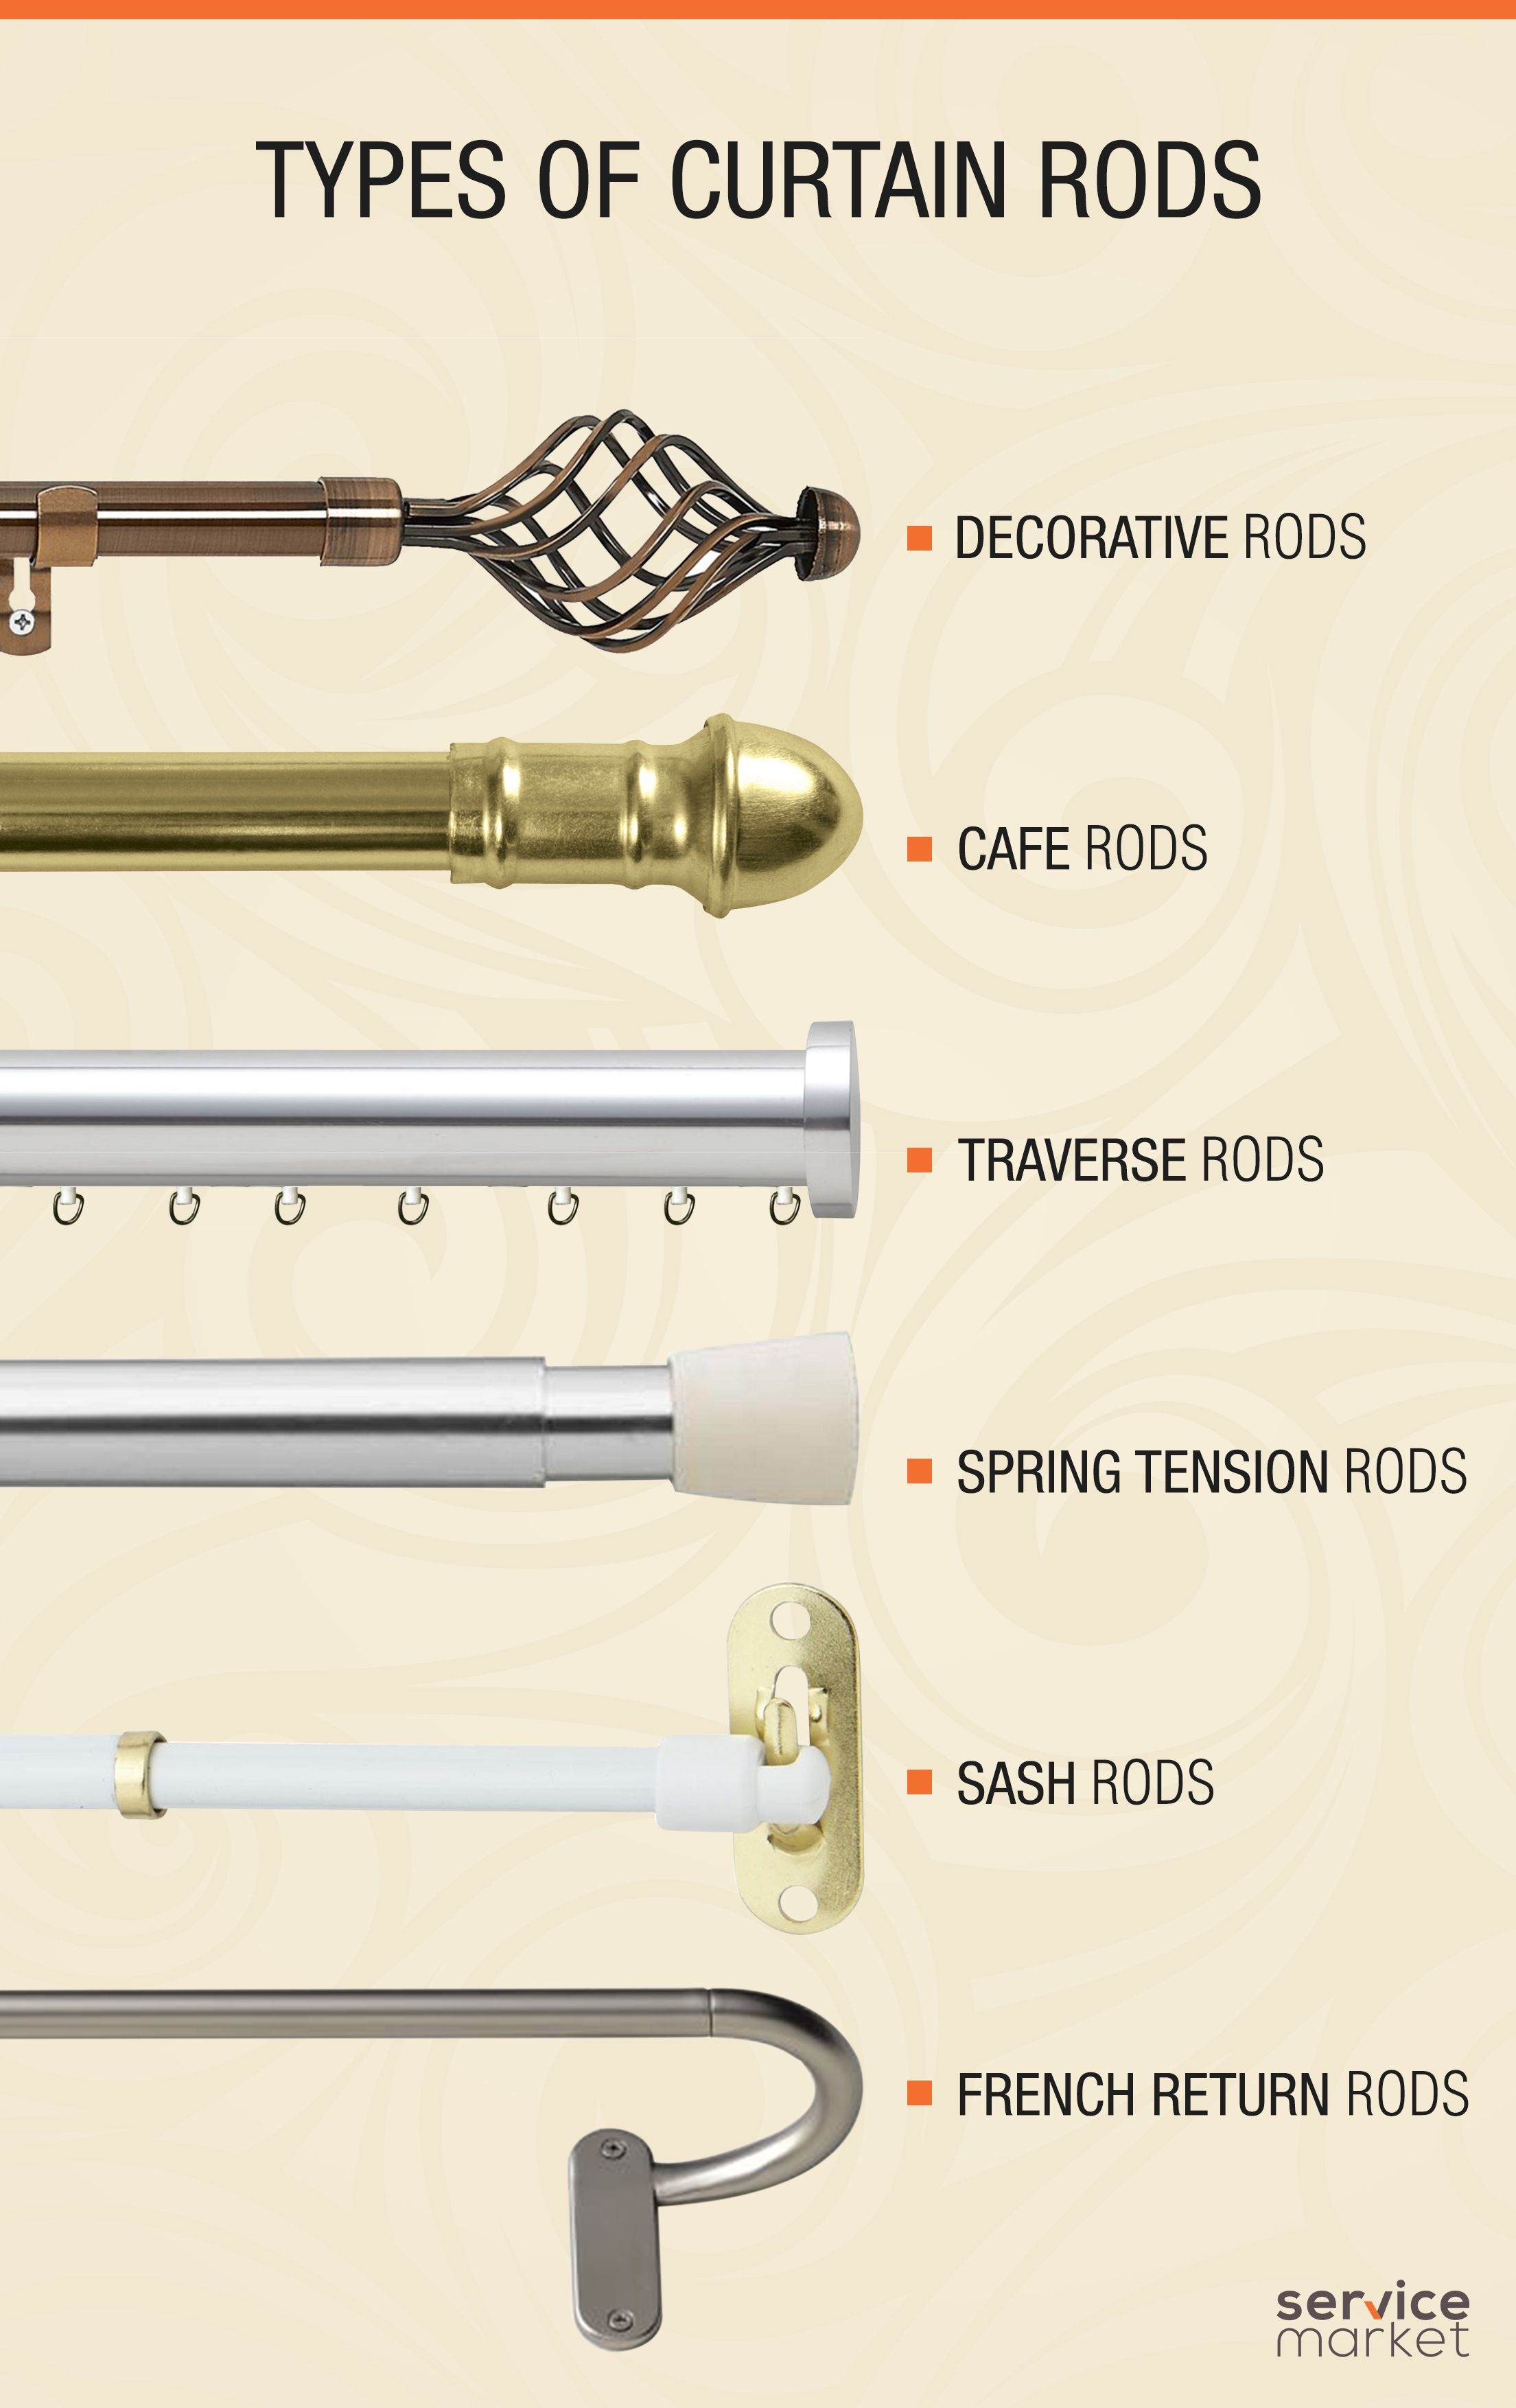 types of curtain rods Types of Curtain Rods   The Home Project | ServiceMarket types of curtain rods